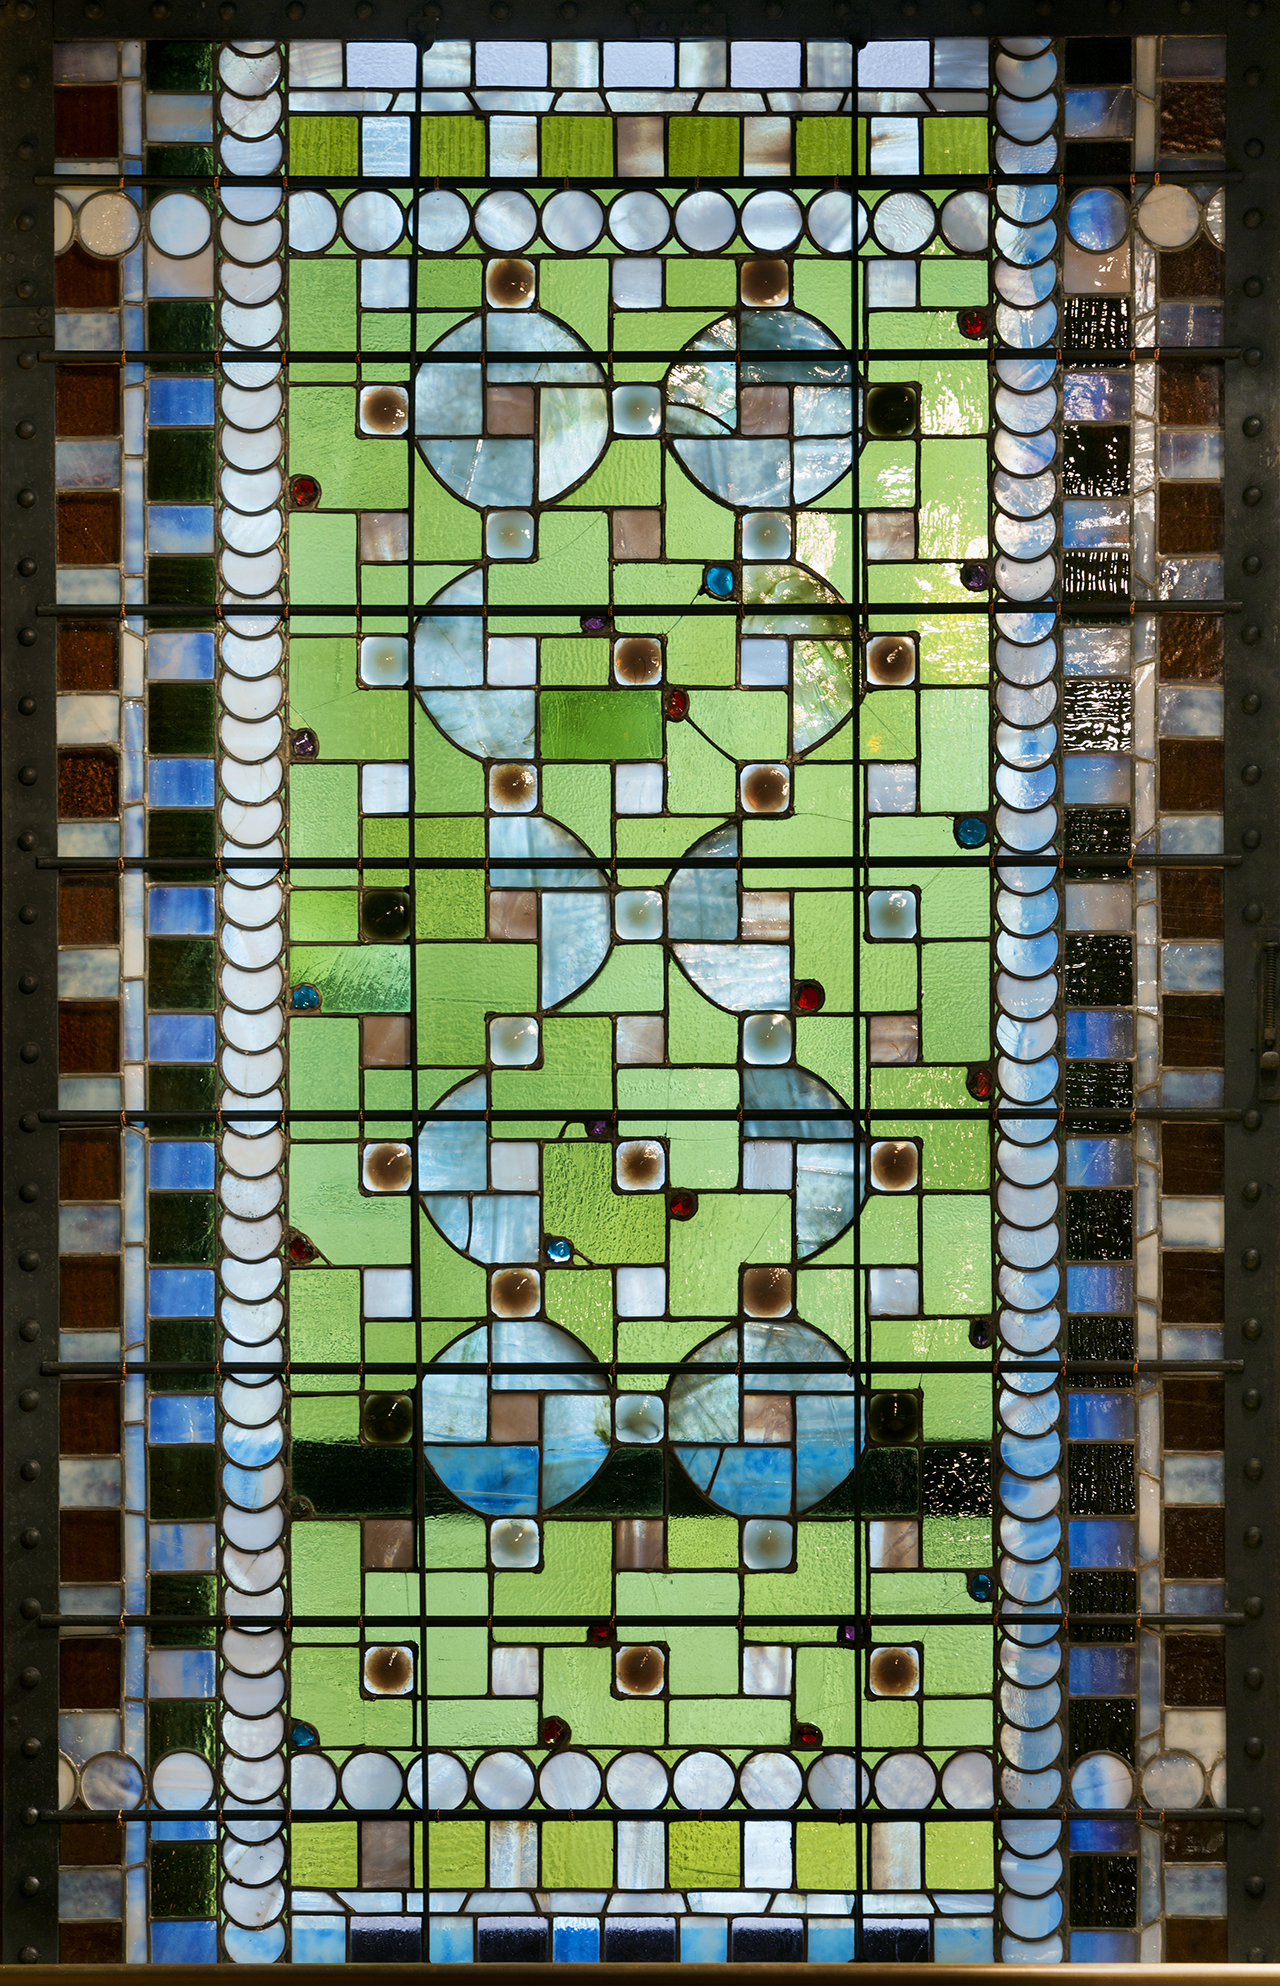 Stained glass window by Louis Comfort Tiffany in the restored and revitalized Veterans Room